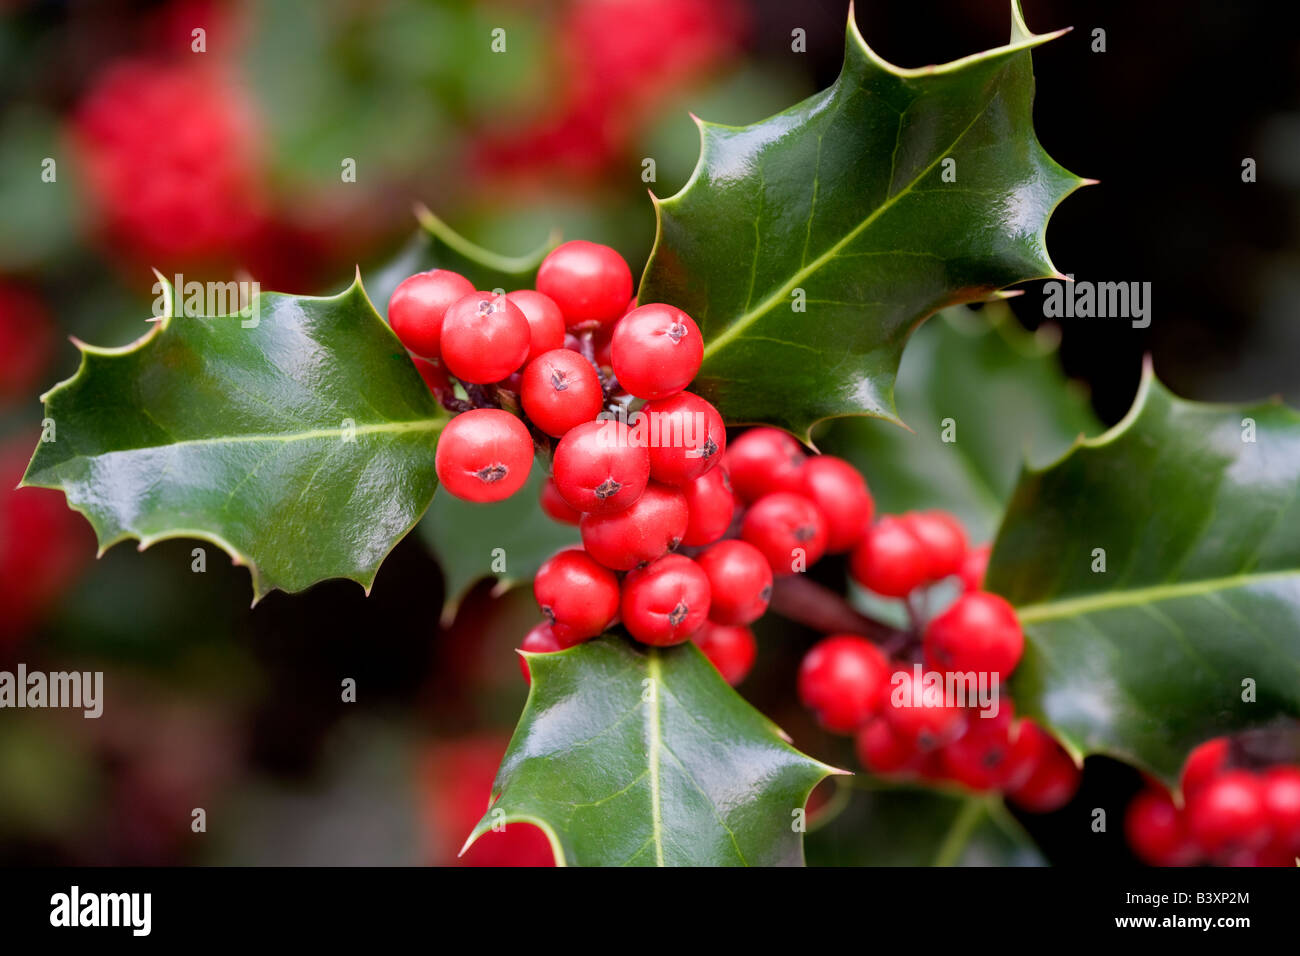 Holly berries and leaves Paradise California - Stock Image